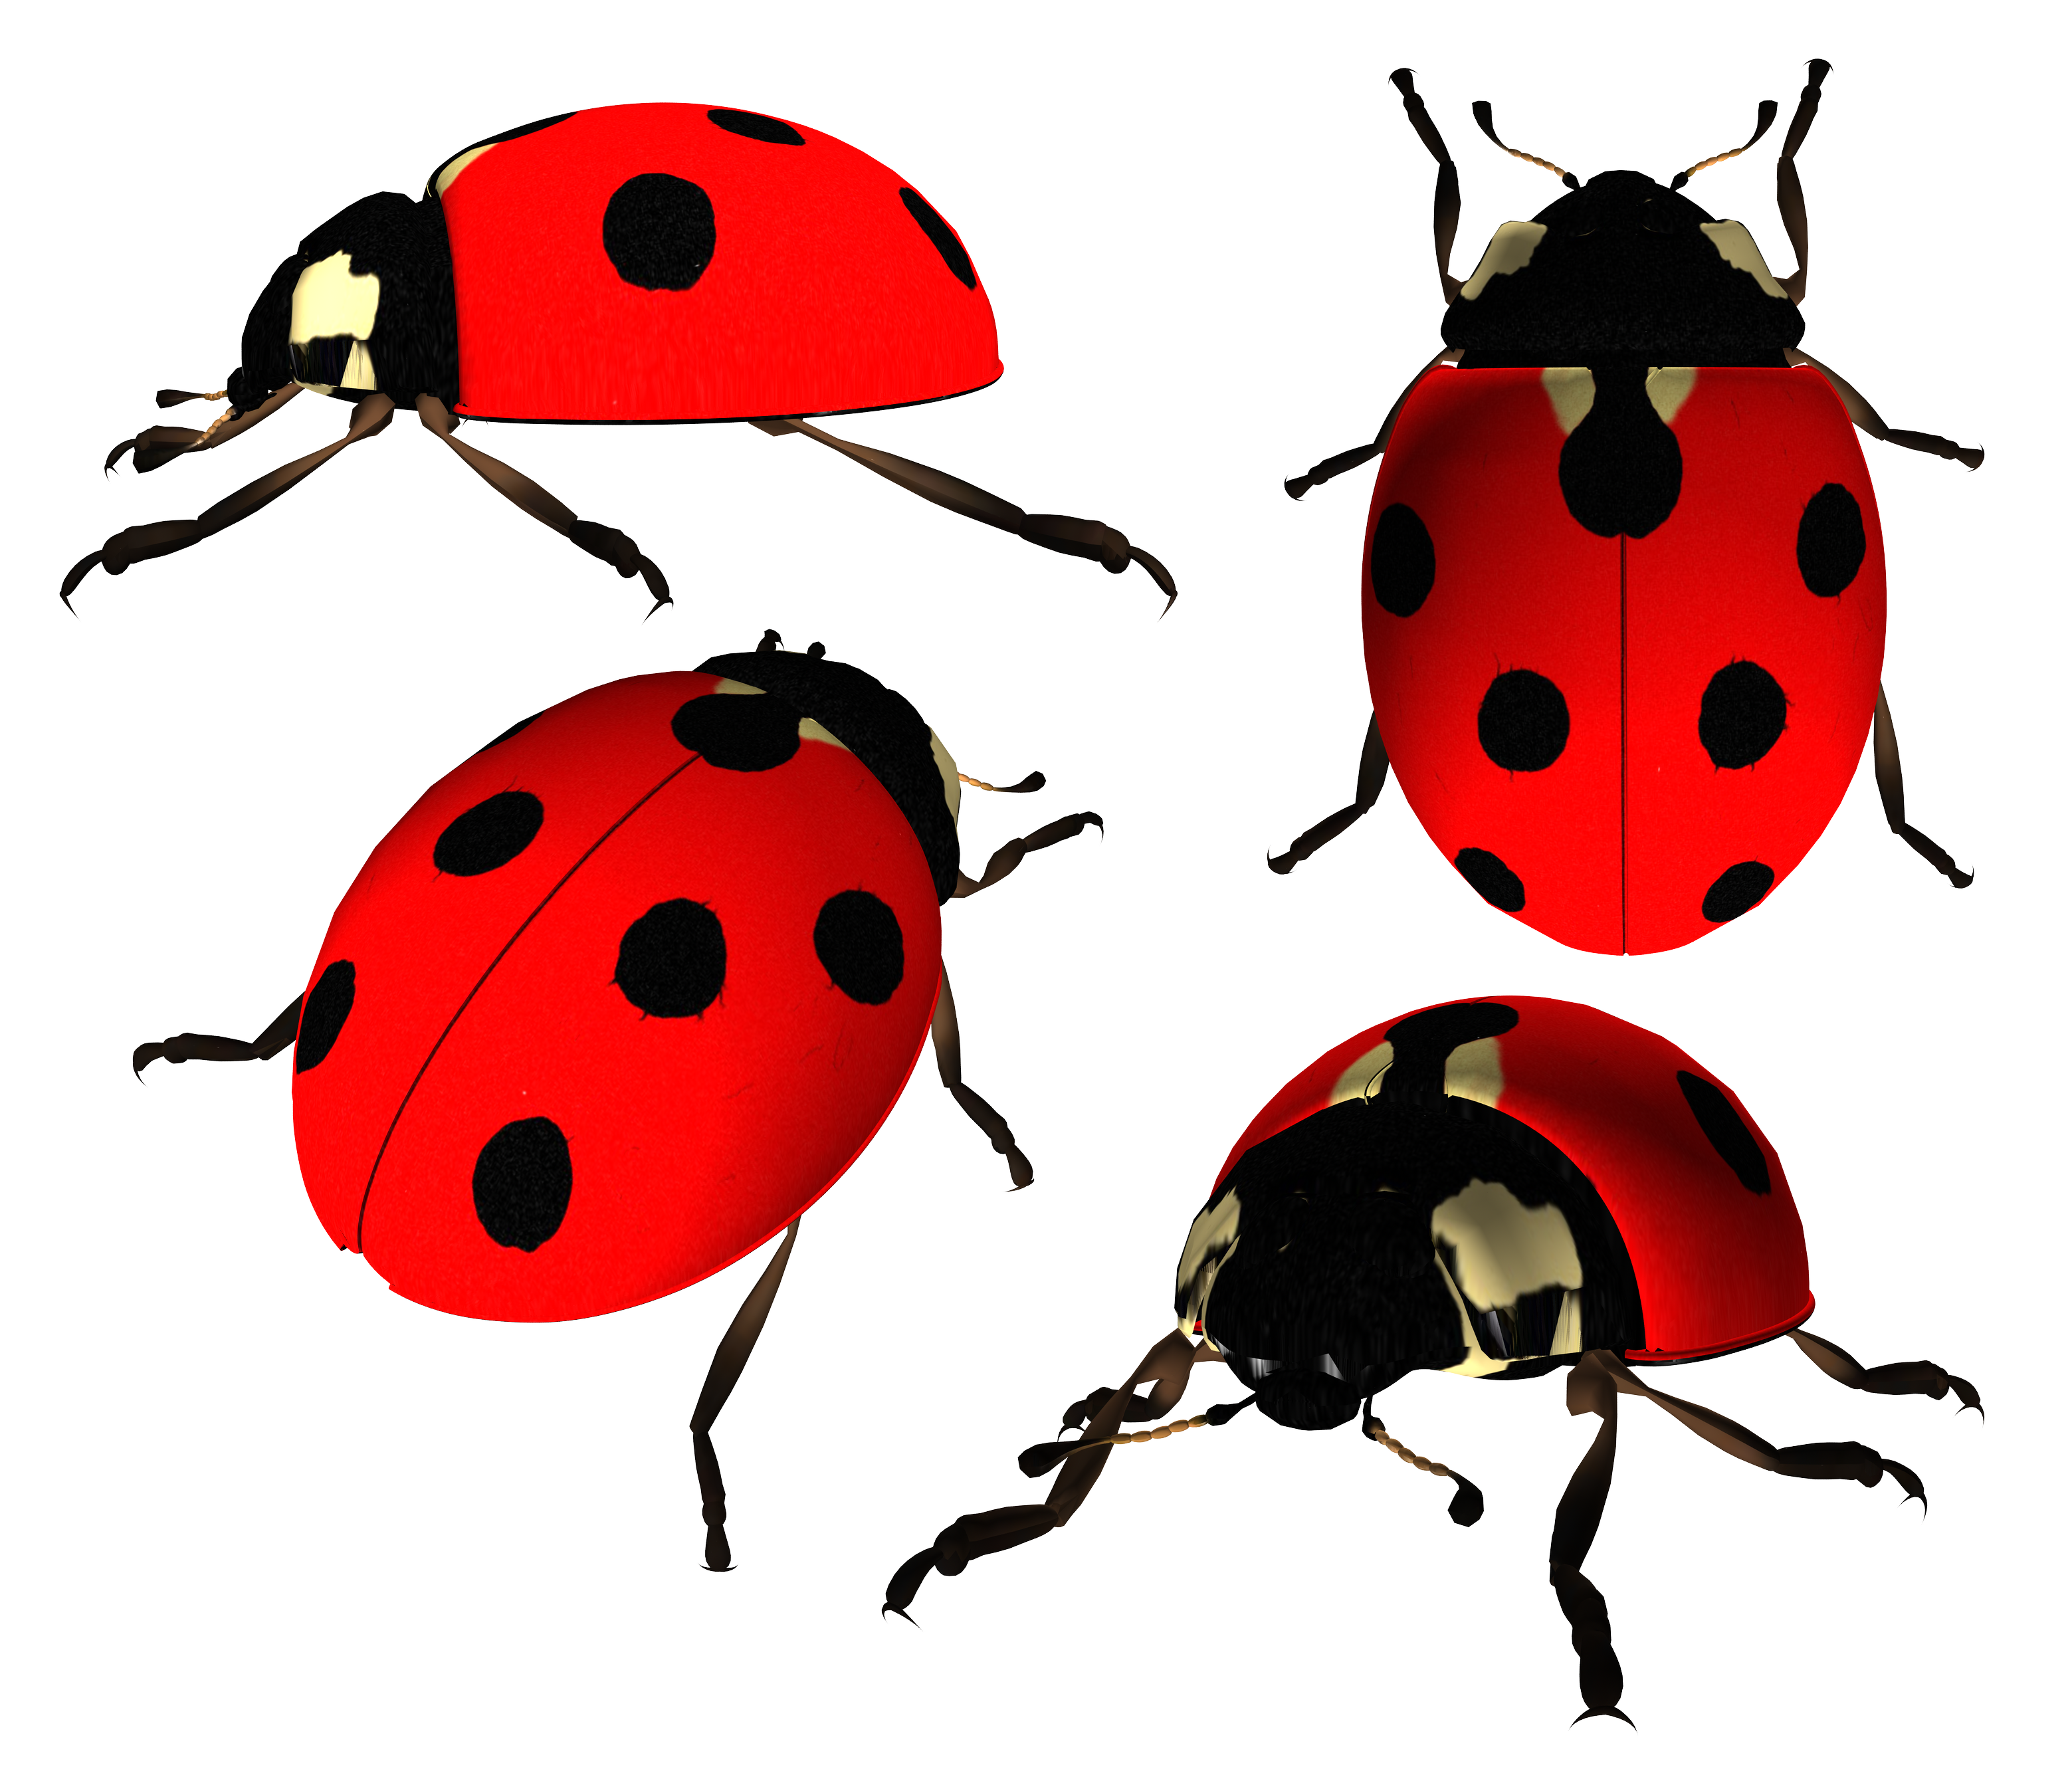 Eleven isolated stock photo. Ladybug clipart transparent background